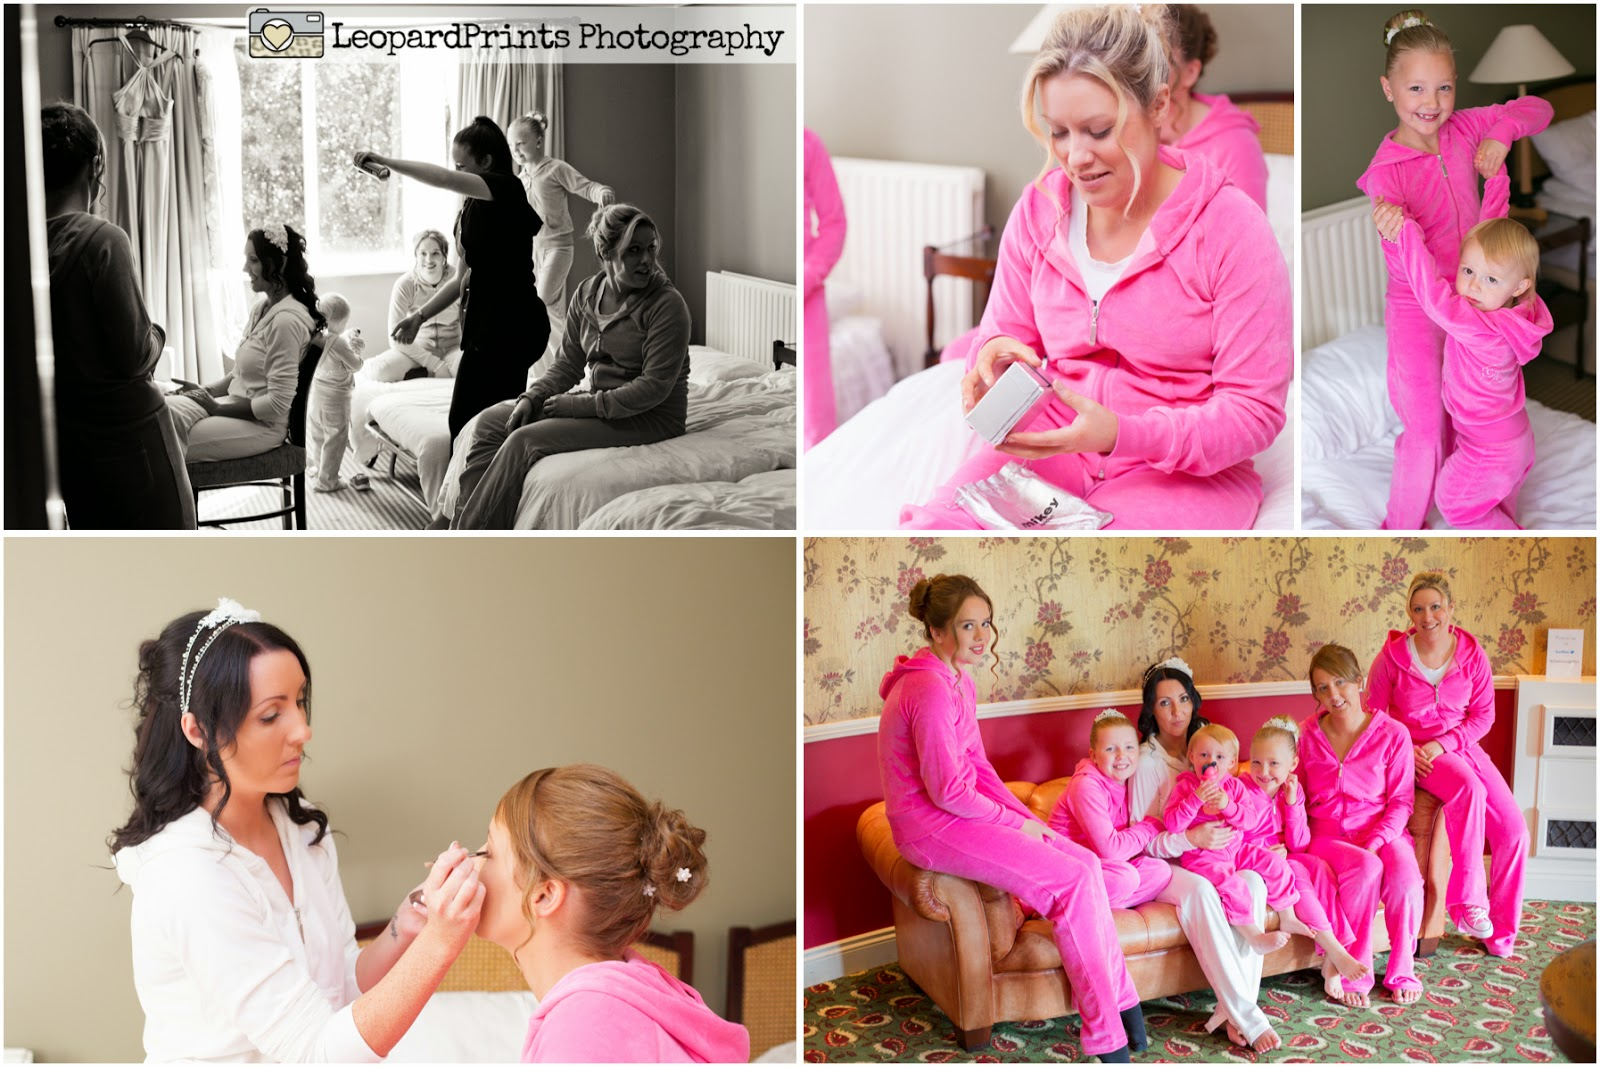 Wedding Photography Archives - Page 6 of 8 - LeopardPrints Photography